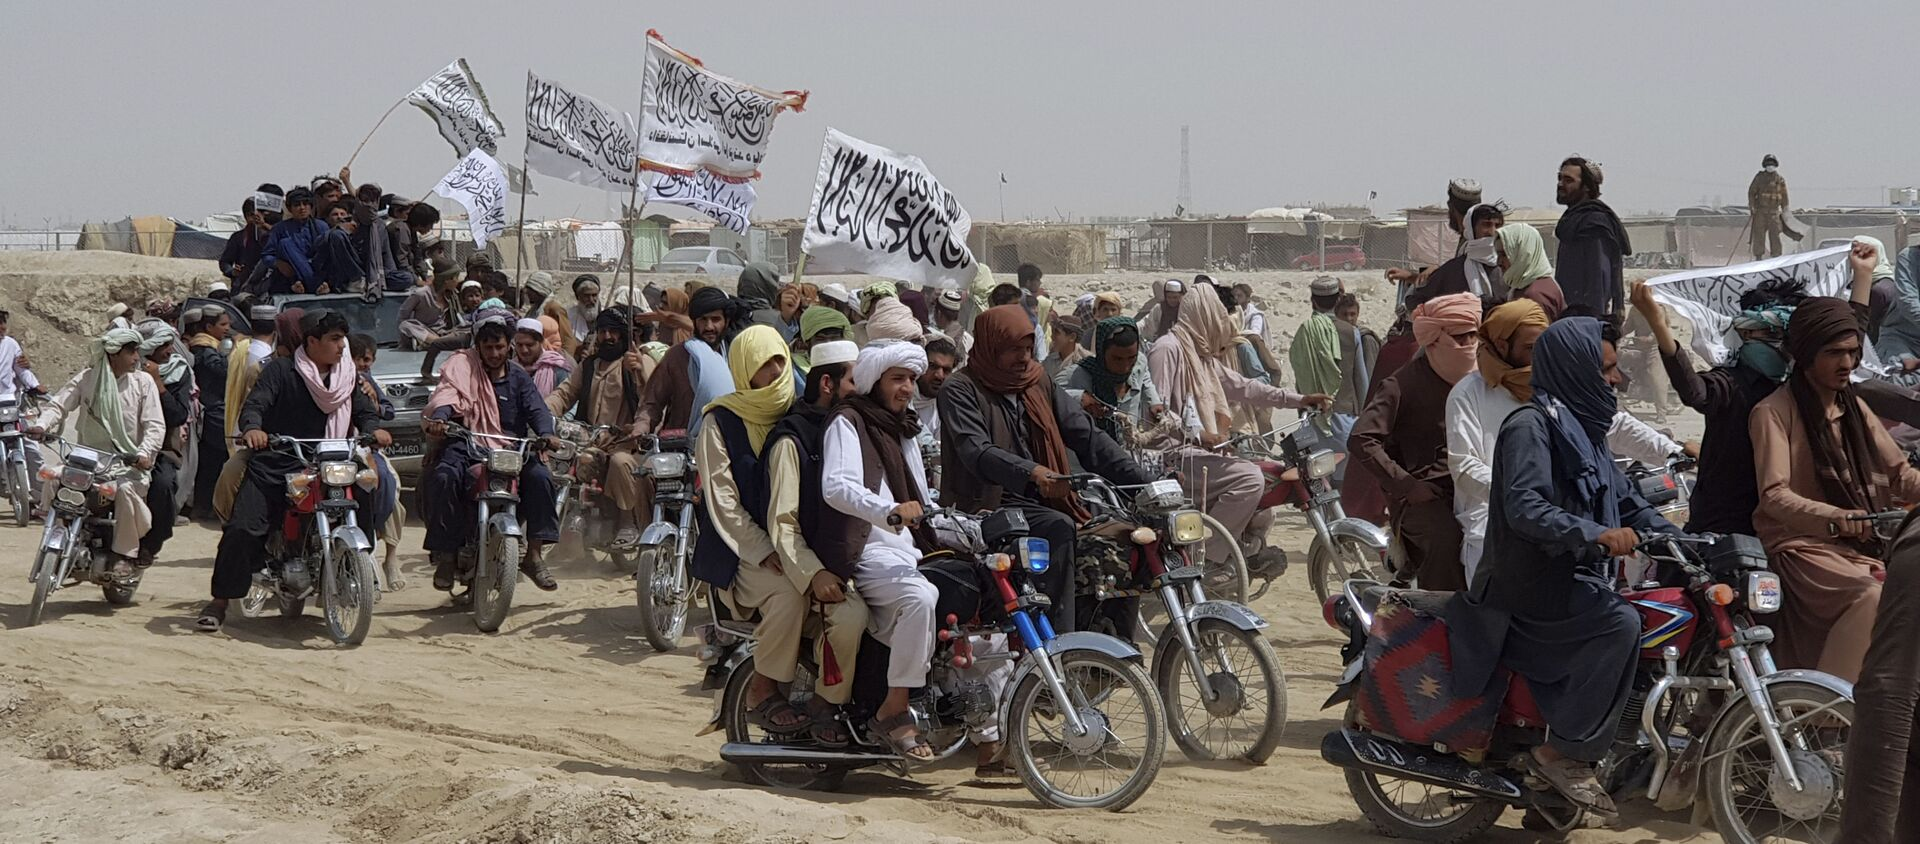 Supporters of the Taliban carry the Taliban's signature white flags in the Afghan-Pakistan border town of Chaman, Pakistan, Wednesday, July 14, 2021 - Sputnik International, 1920, 01.08.2021